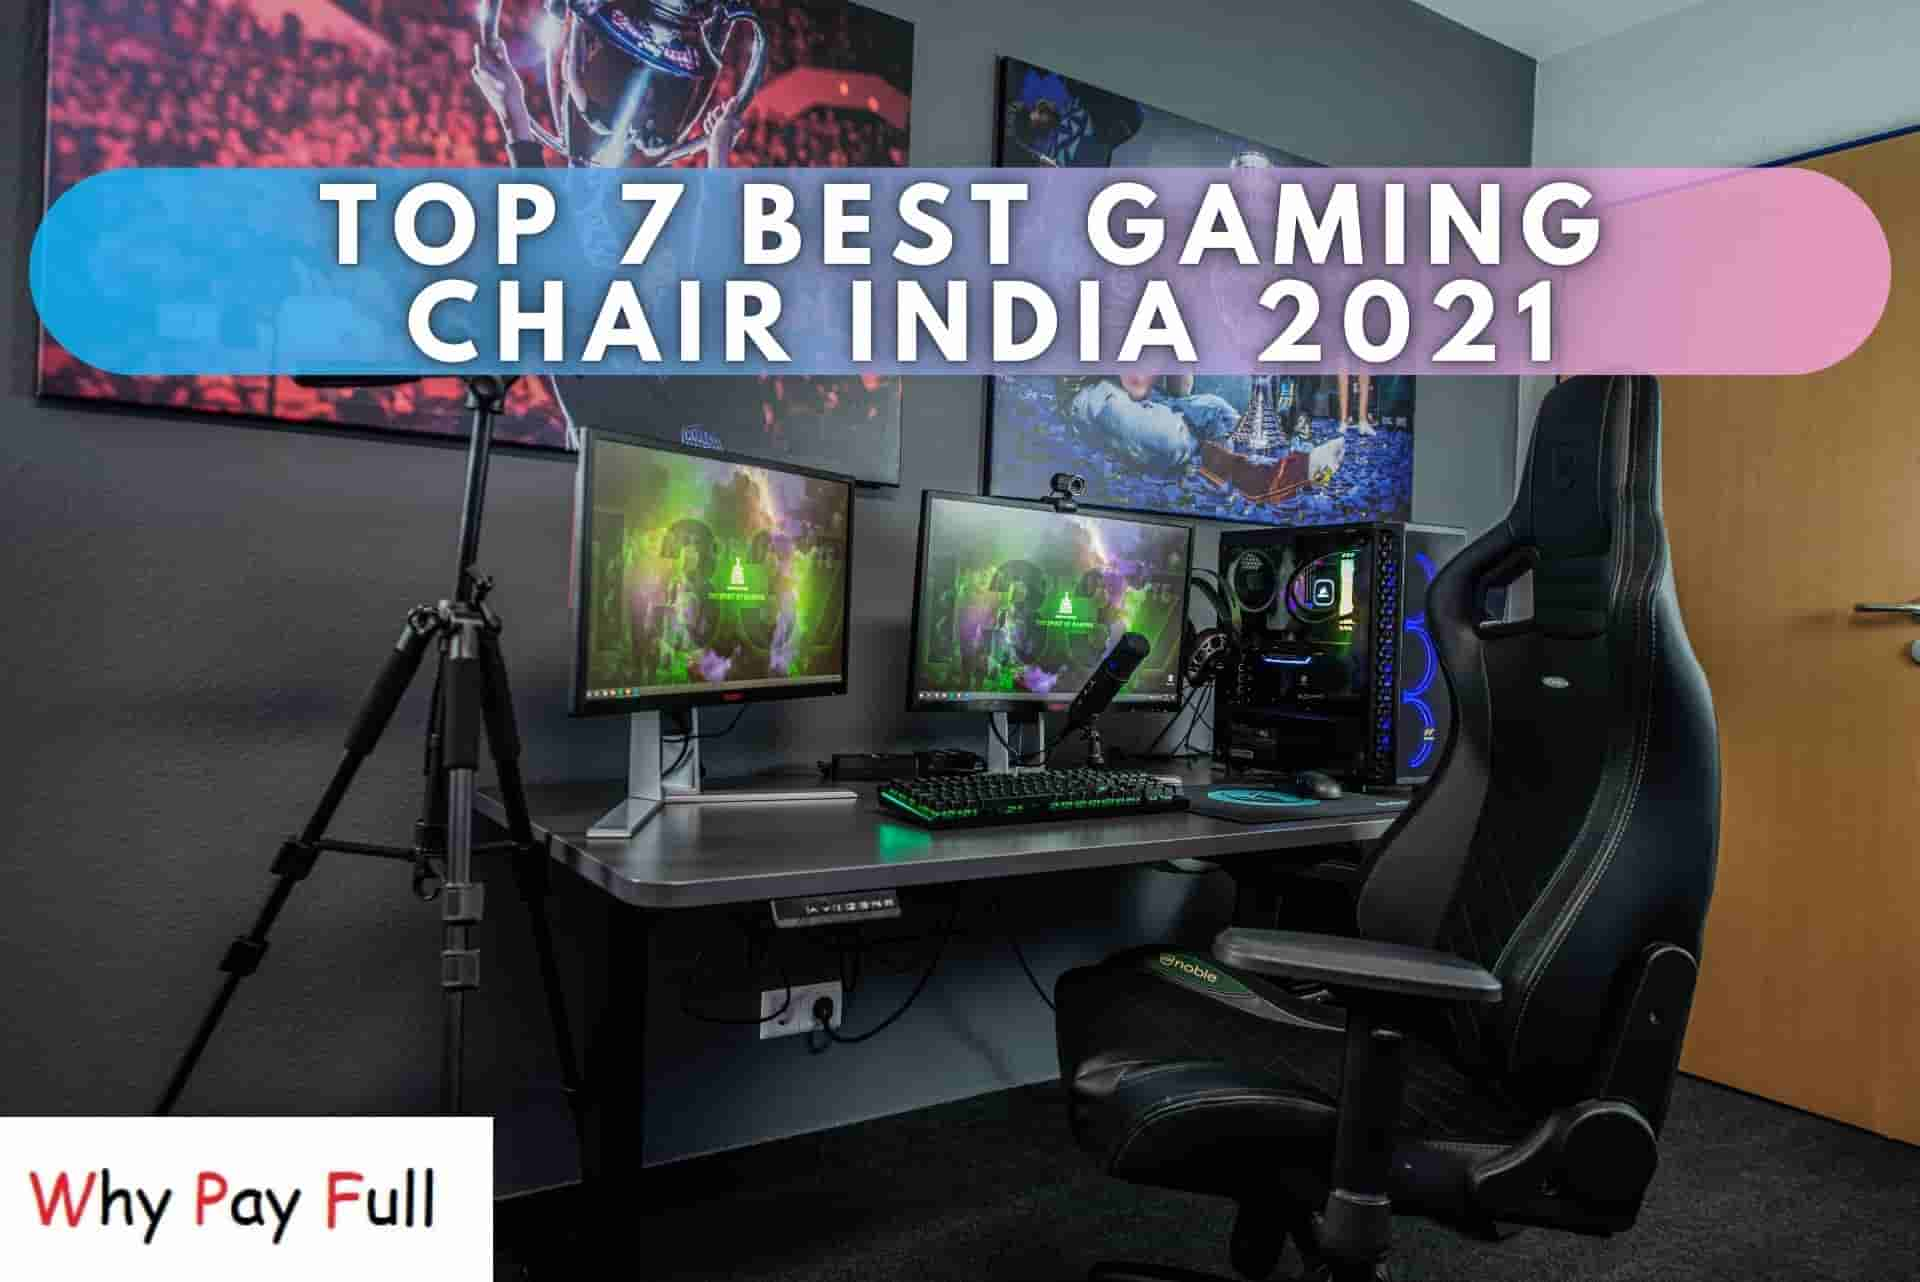 top 10 best Gaming Chair india 2021